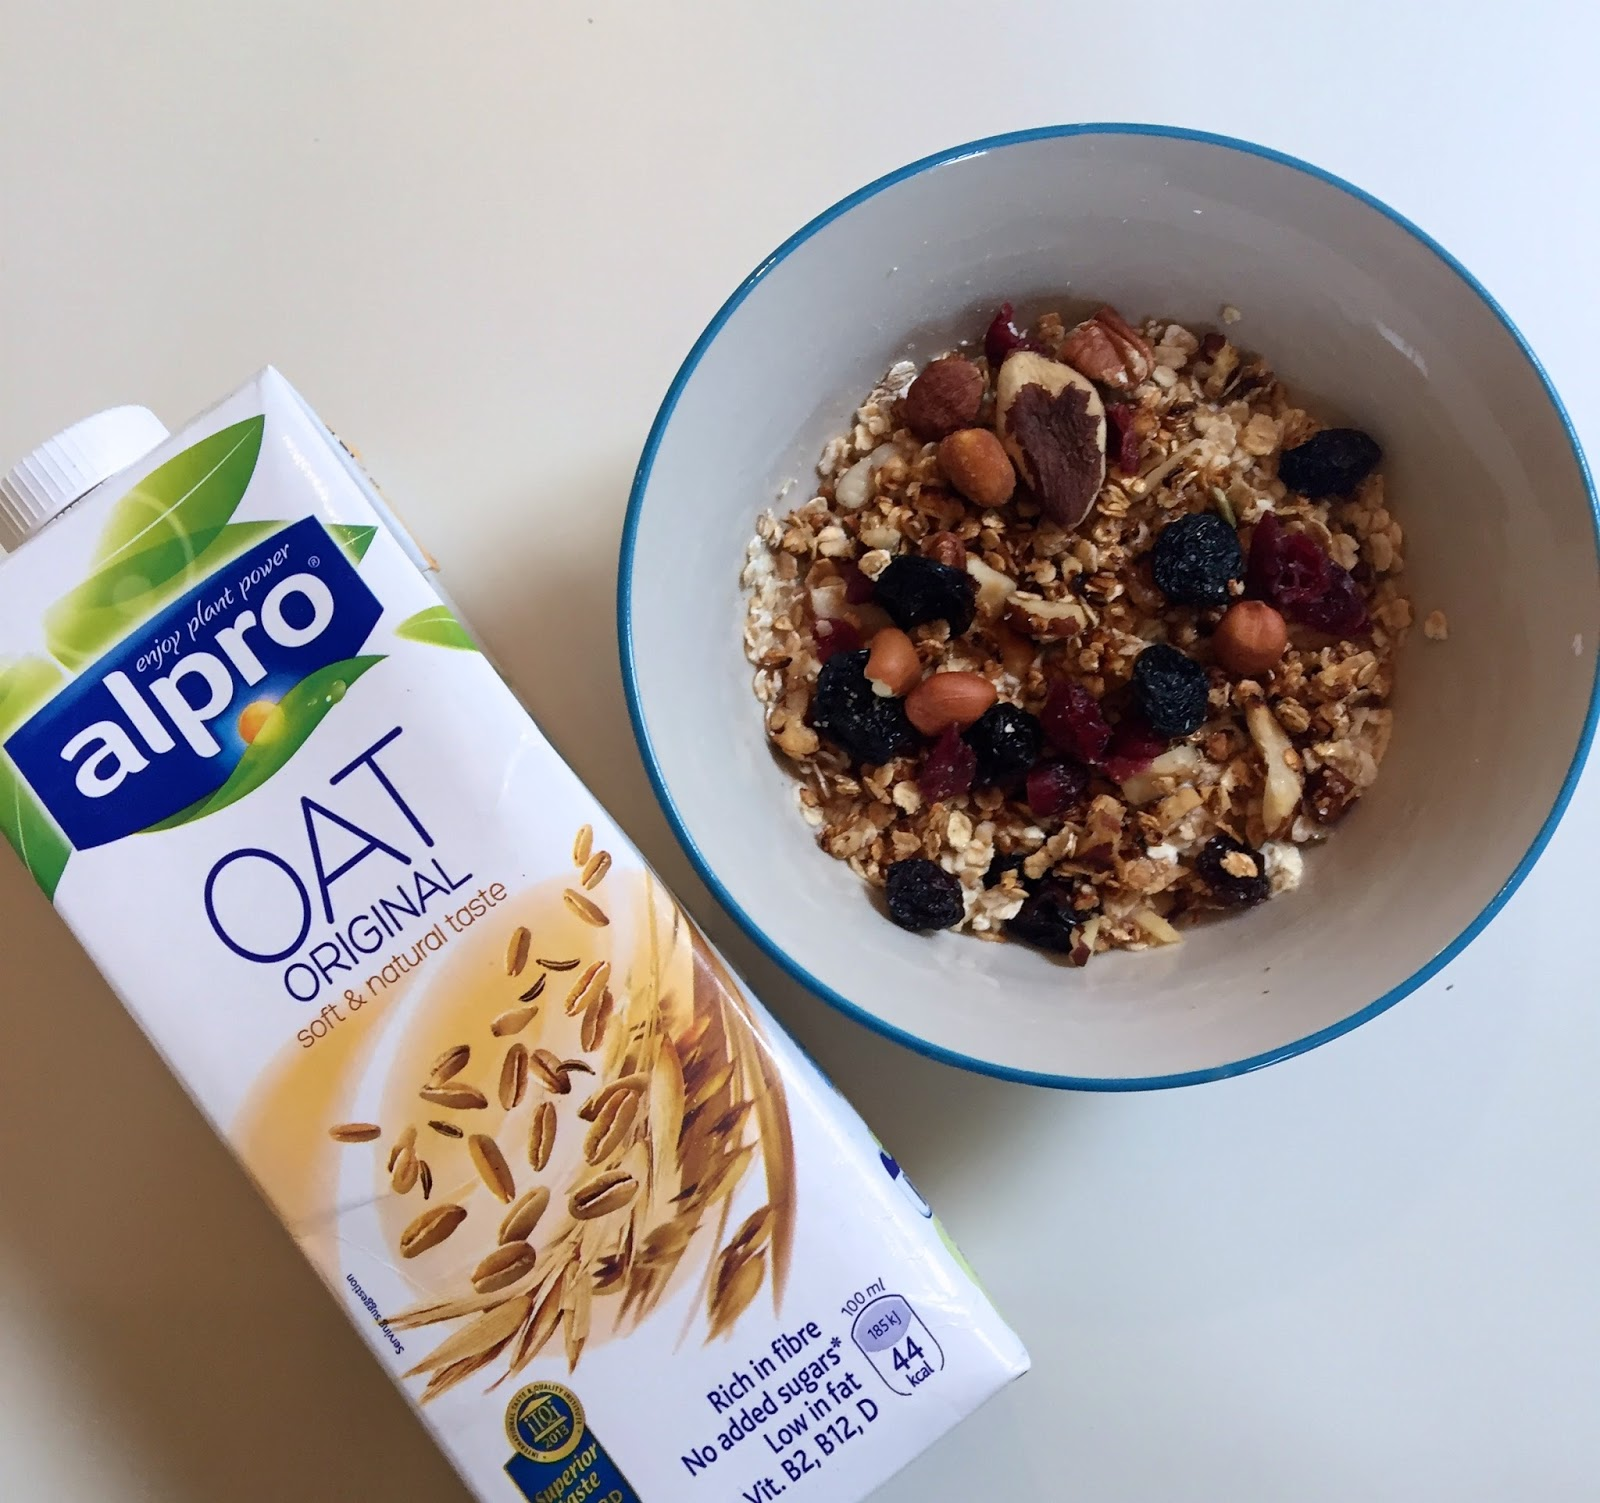 Alpro oat drink not just for breakfast the fashionista observer if you find yourself needing to make breakfast for someone these 2 recipes are the perfect thing to make quick and easy what more can you want ccuart Image collections